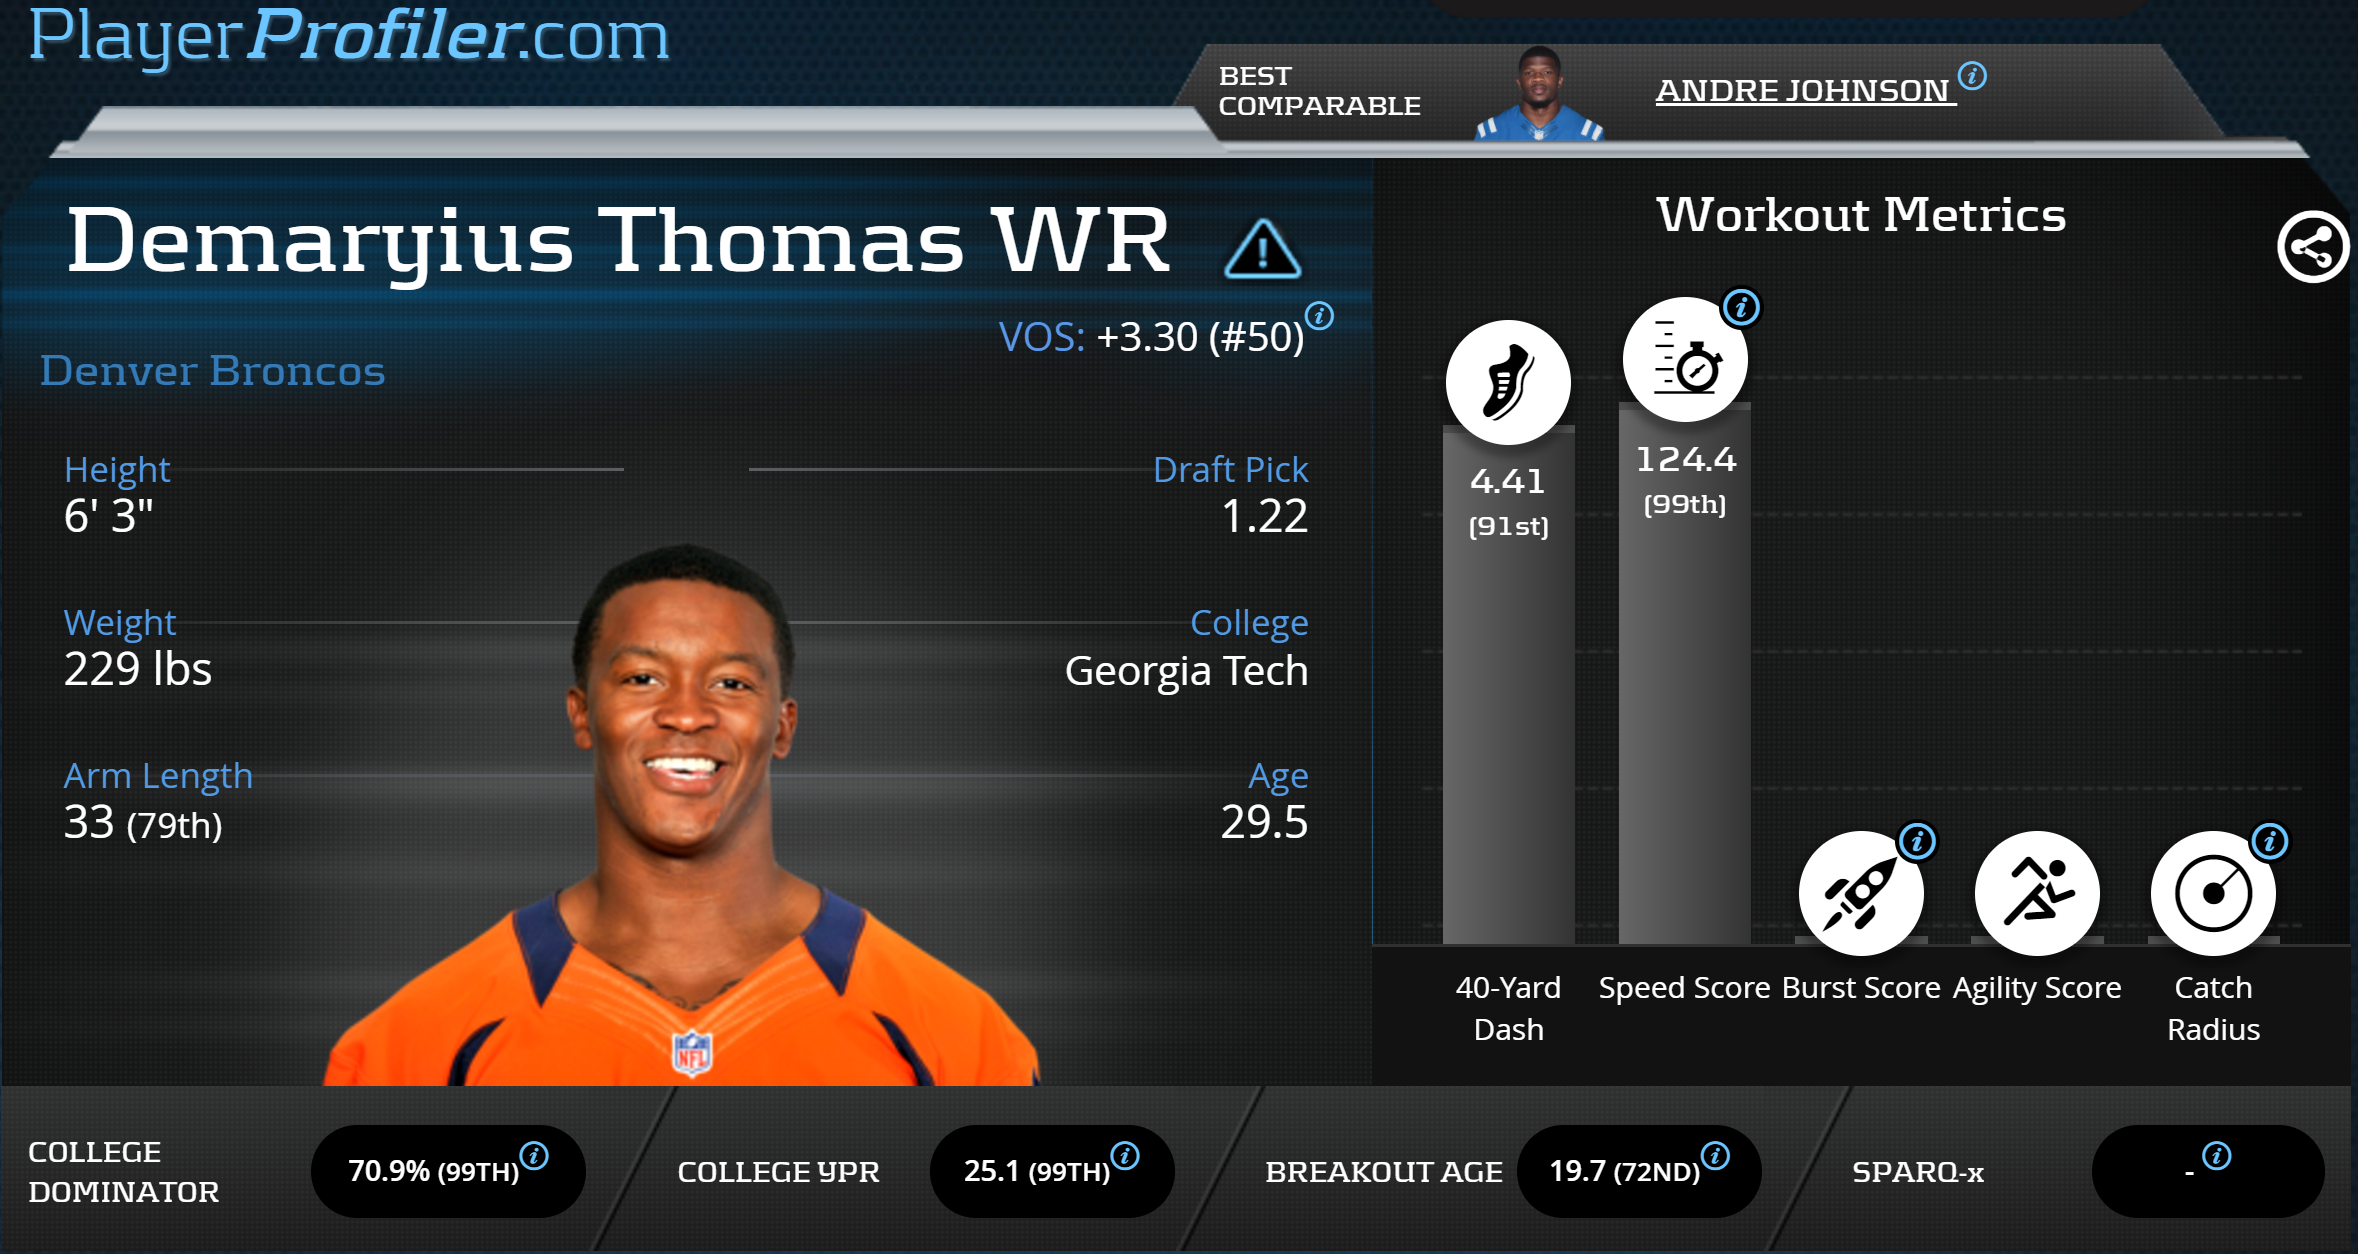 Demaryius Thomas yards after the catch regression points to WR1 season